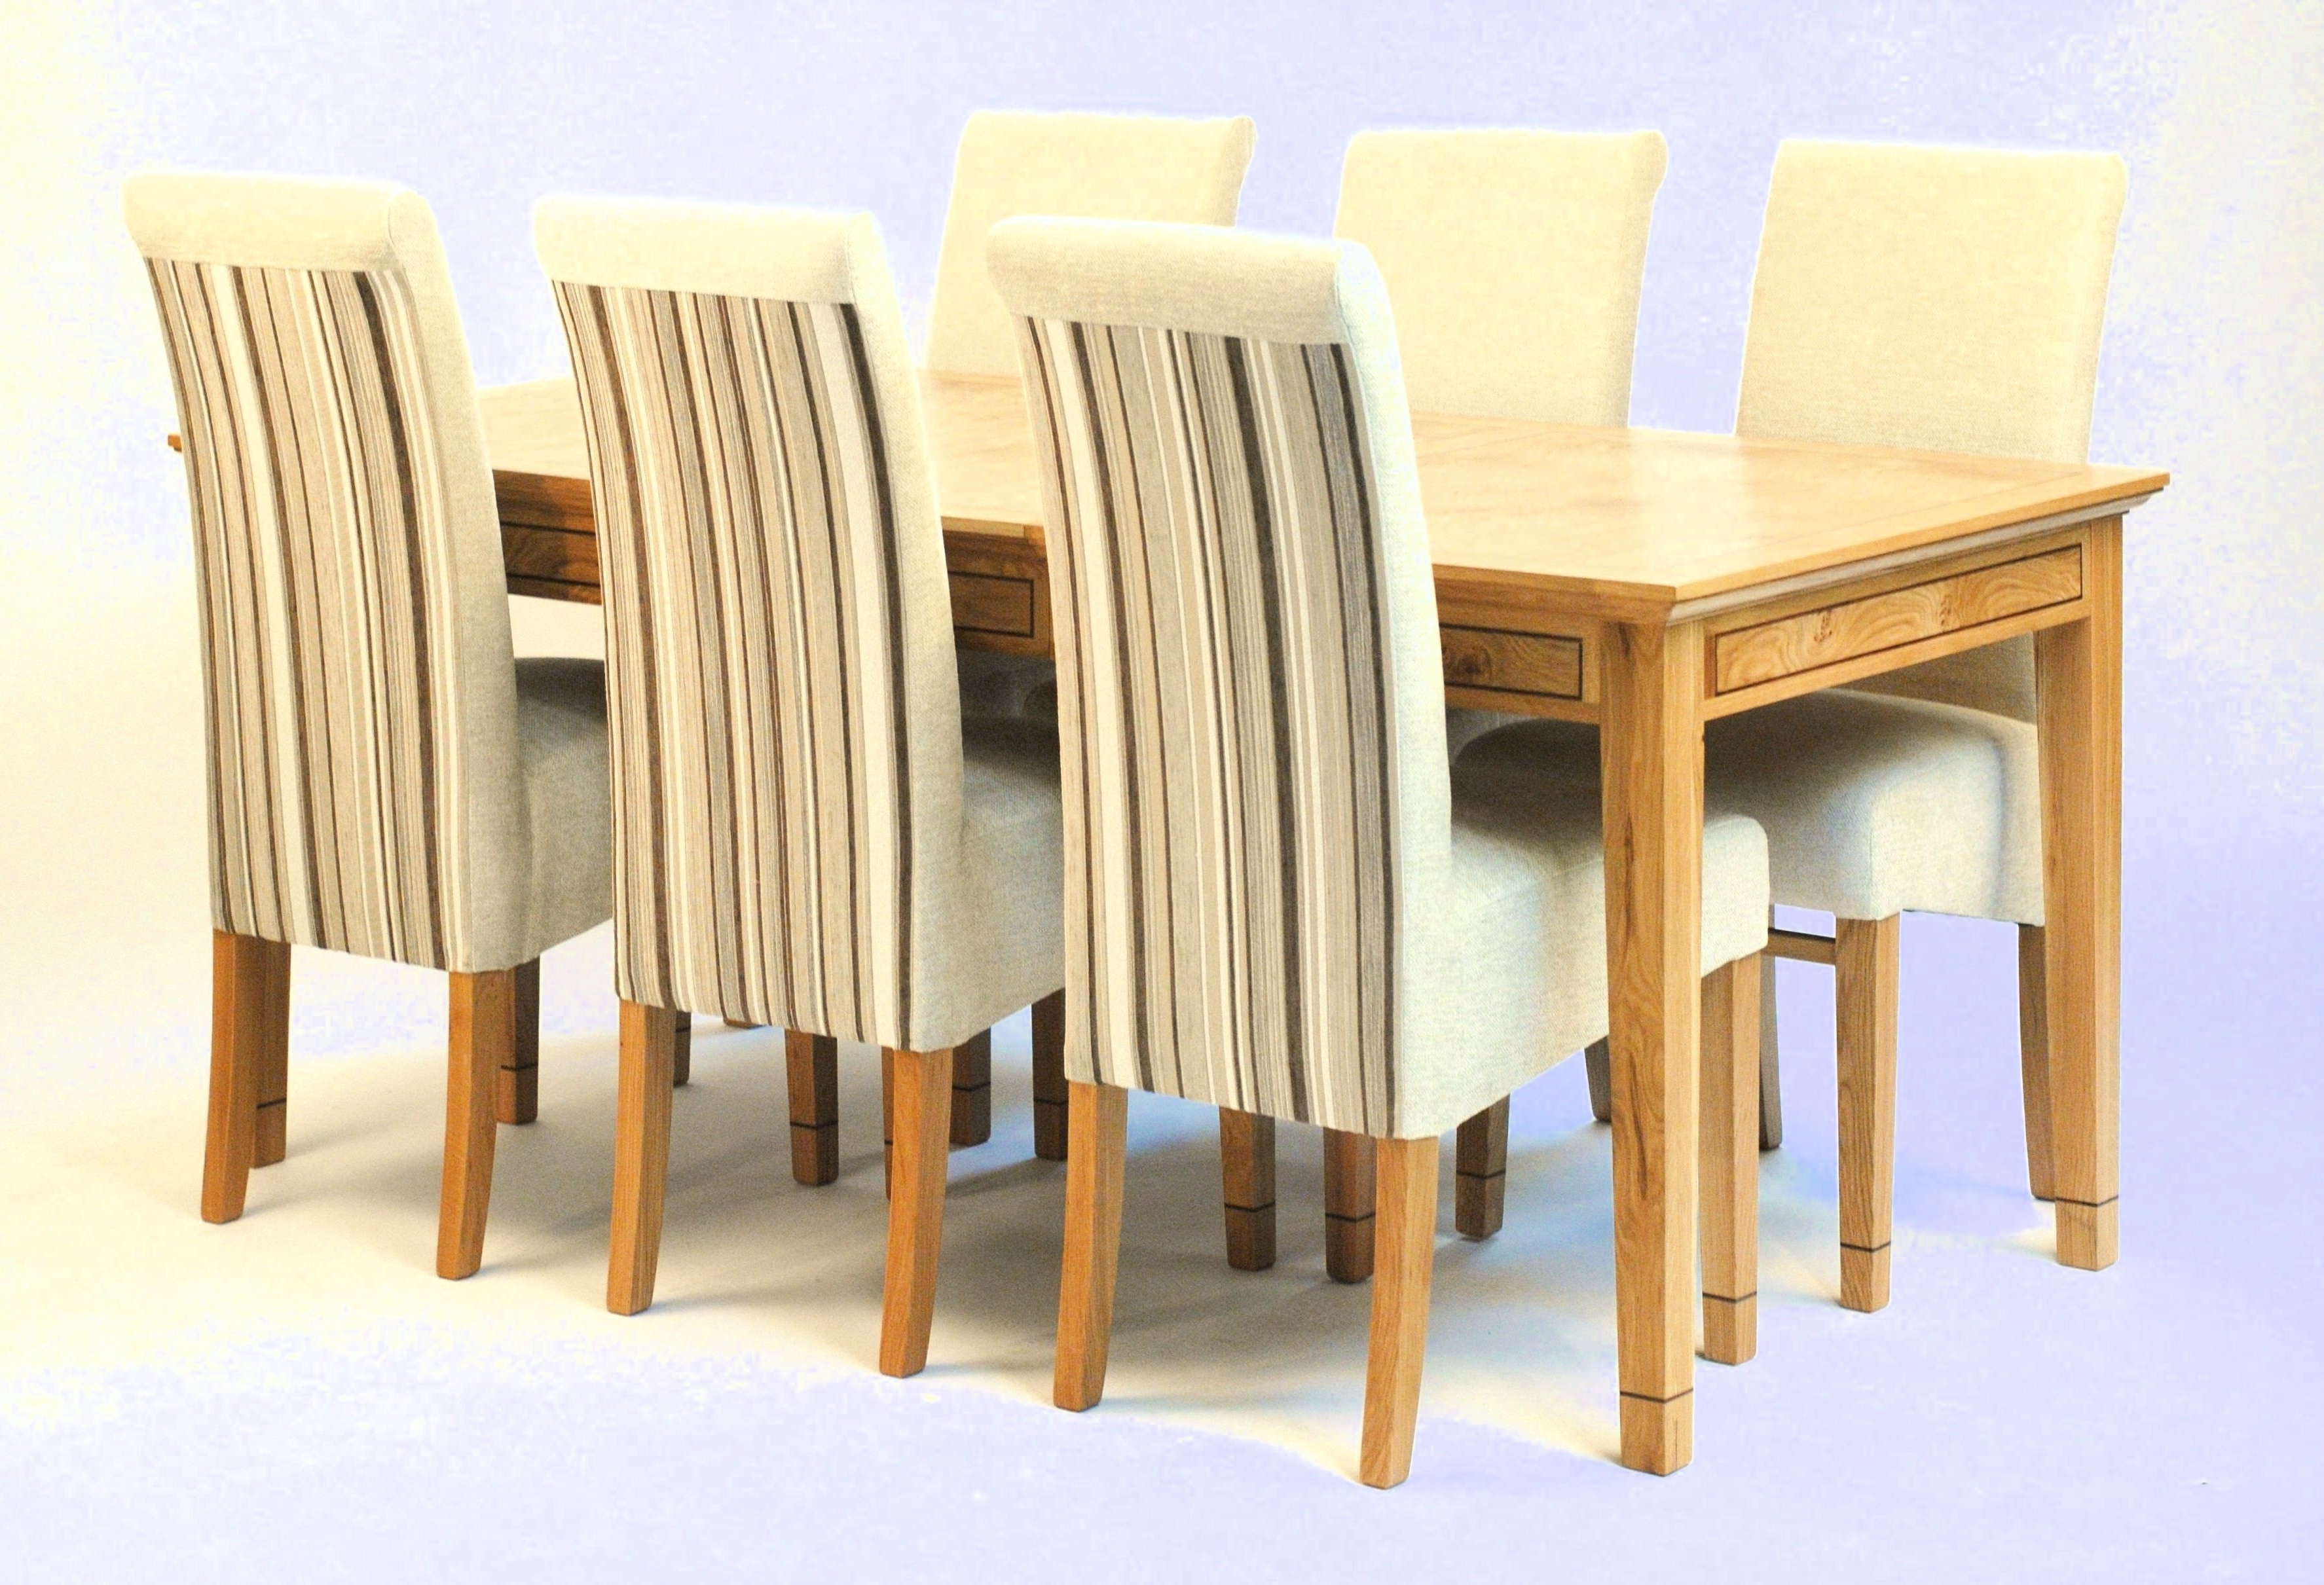 Extending Dining Tables And 6 Chairs Inside Most Current Oak Extending Dining Table & 6 Chairs (View 5 of 25)